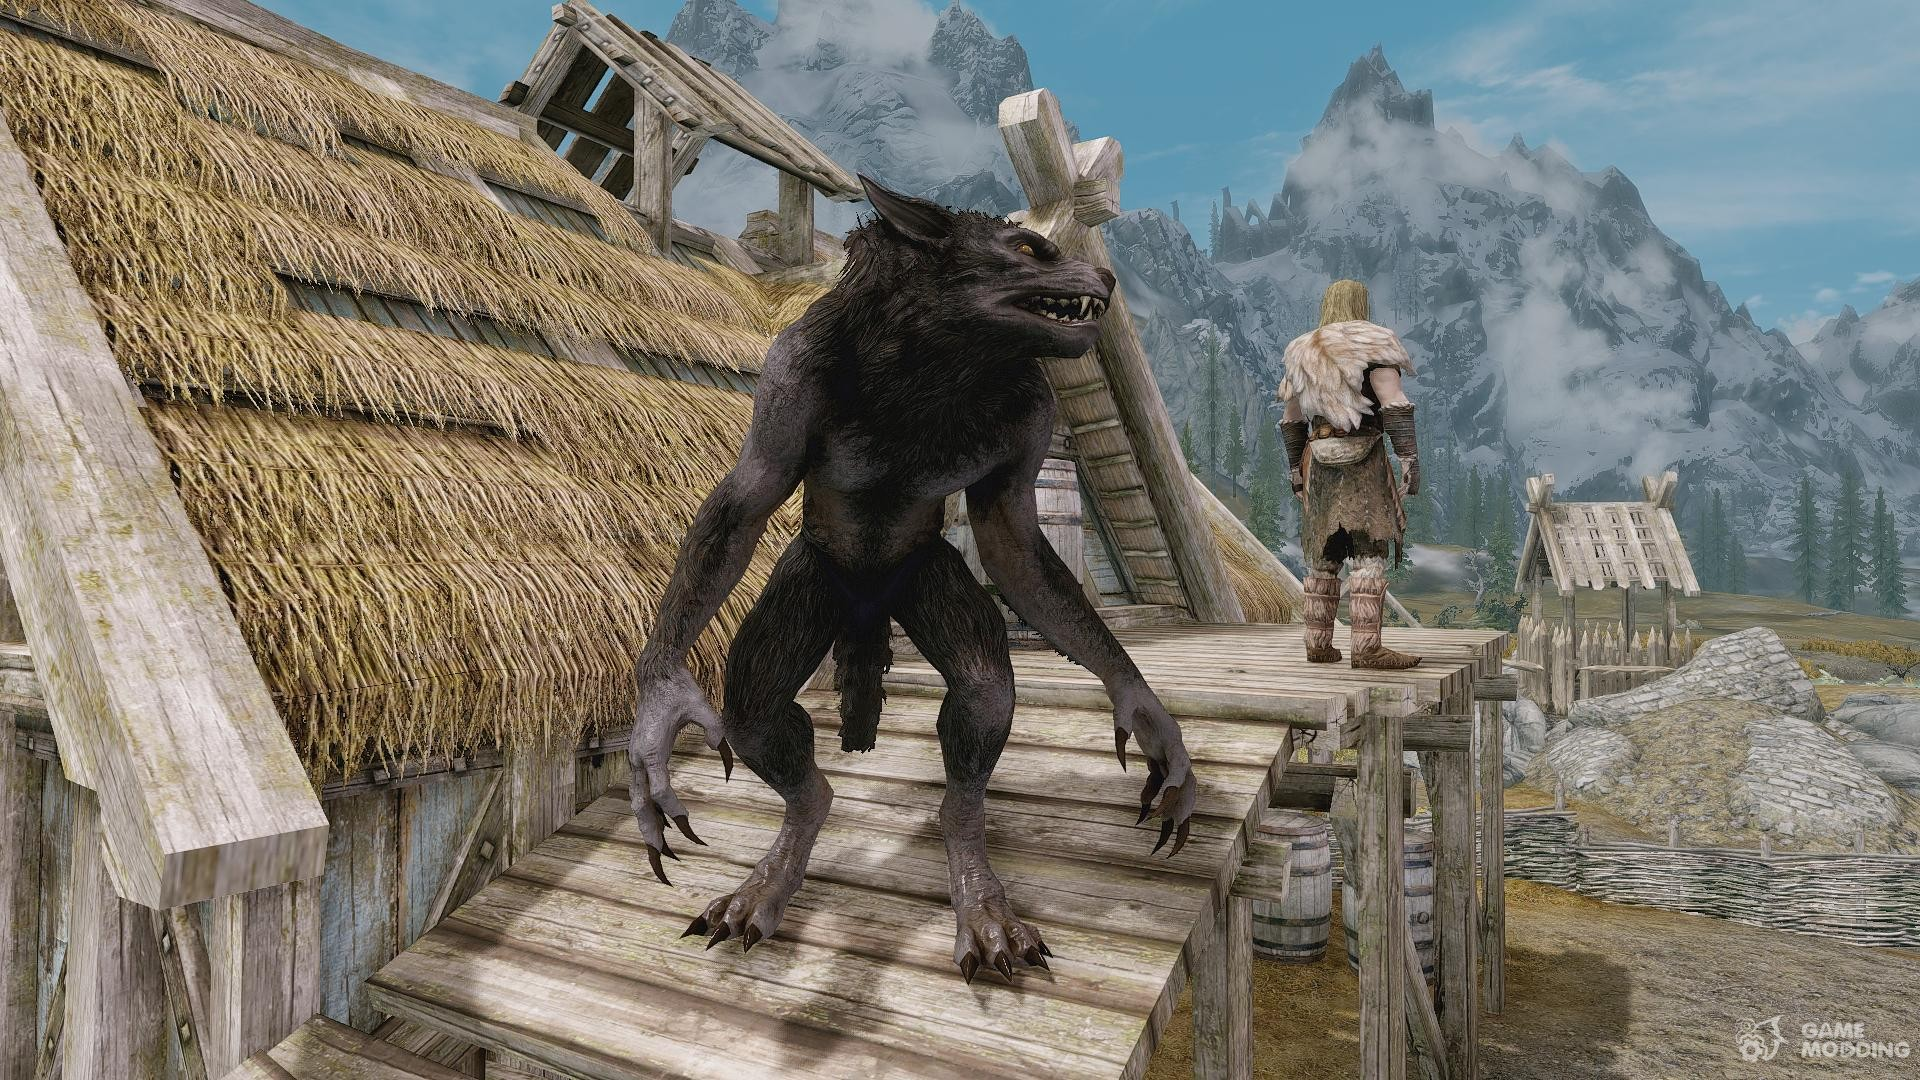 Summon Werewolf and Co - Mounts and Followers for TES V: Skyrim